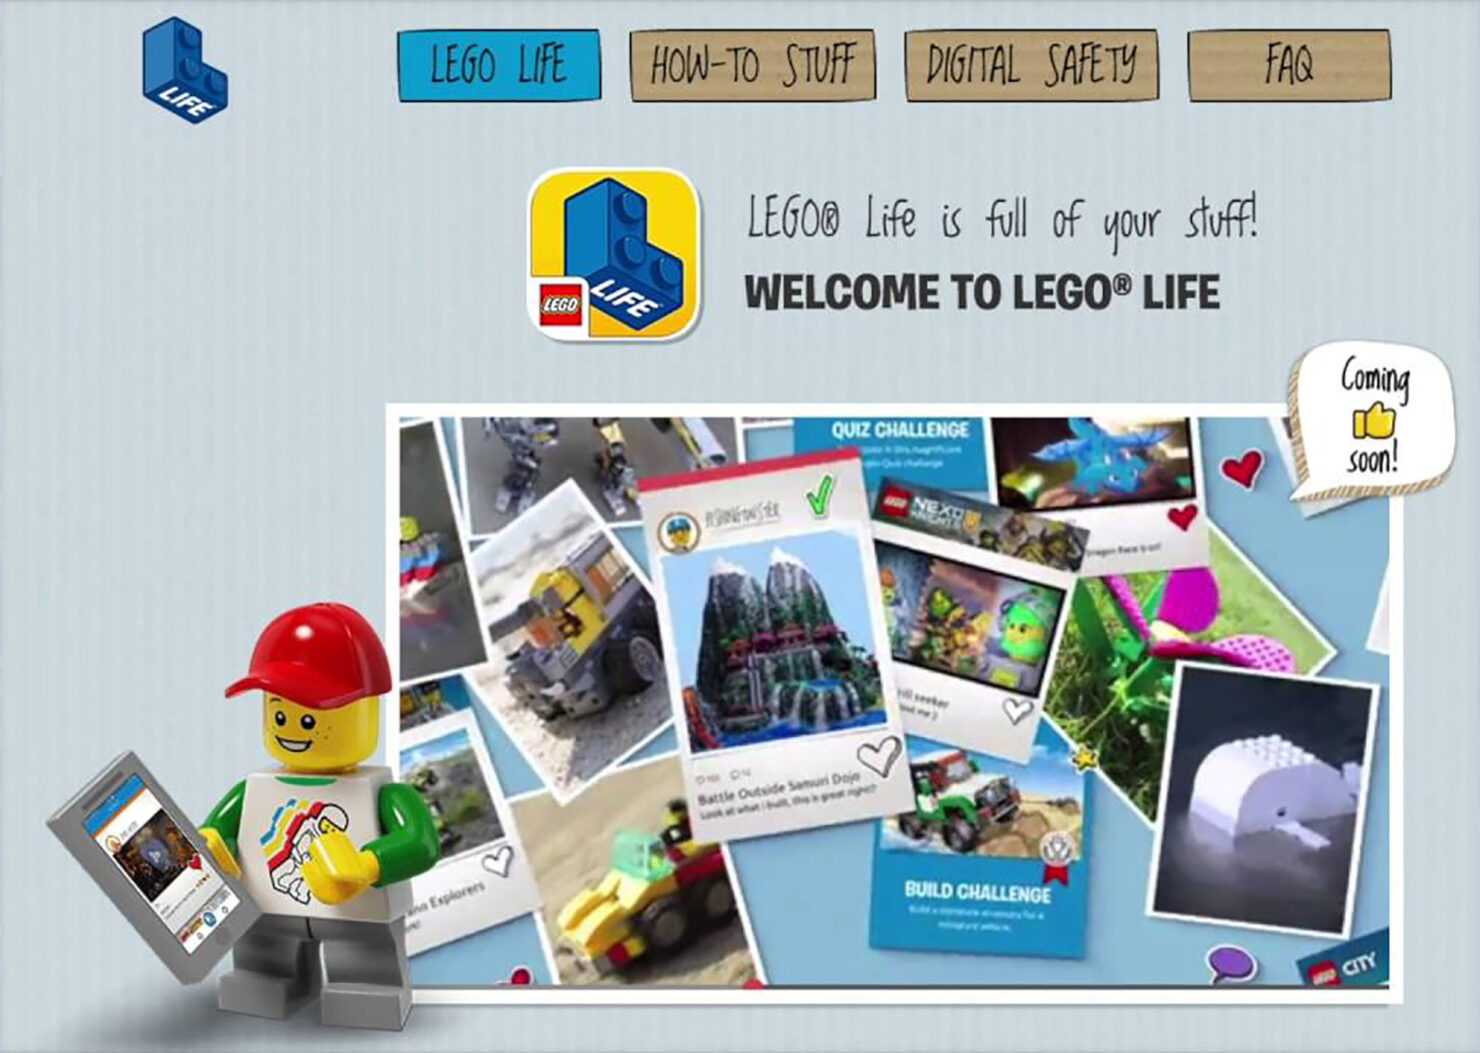 Lego has launched a safe social networking site for children to share their Lego creations